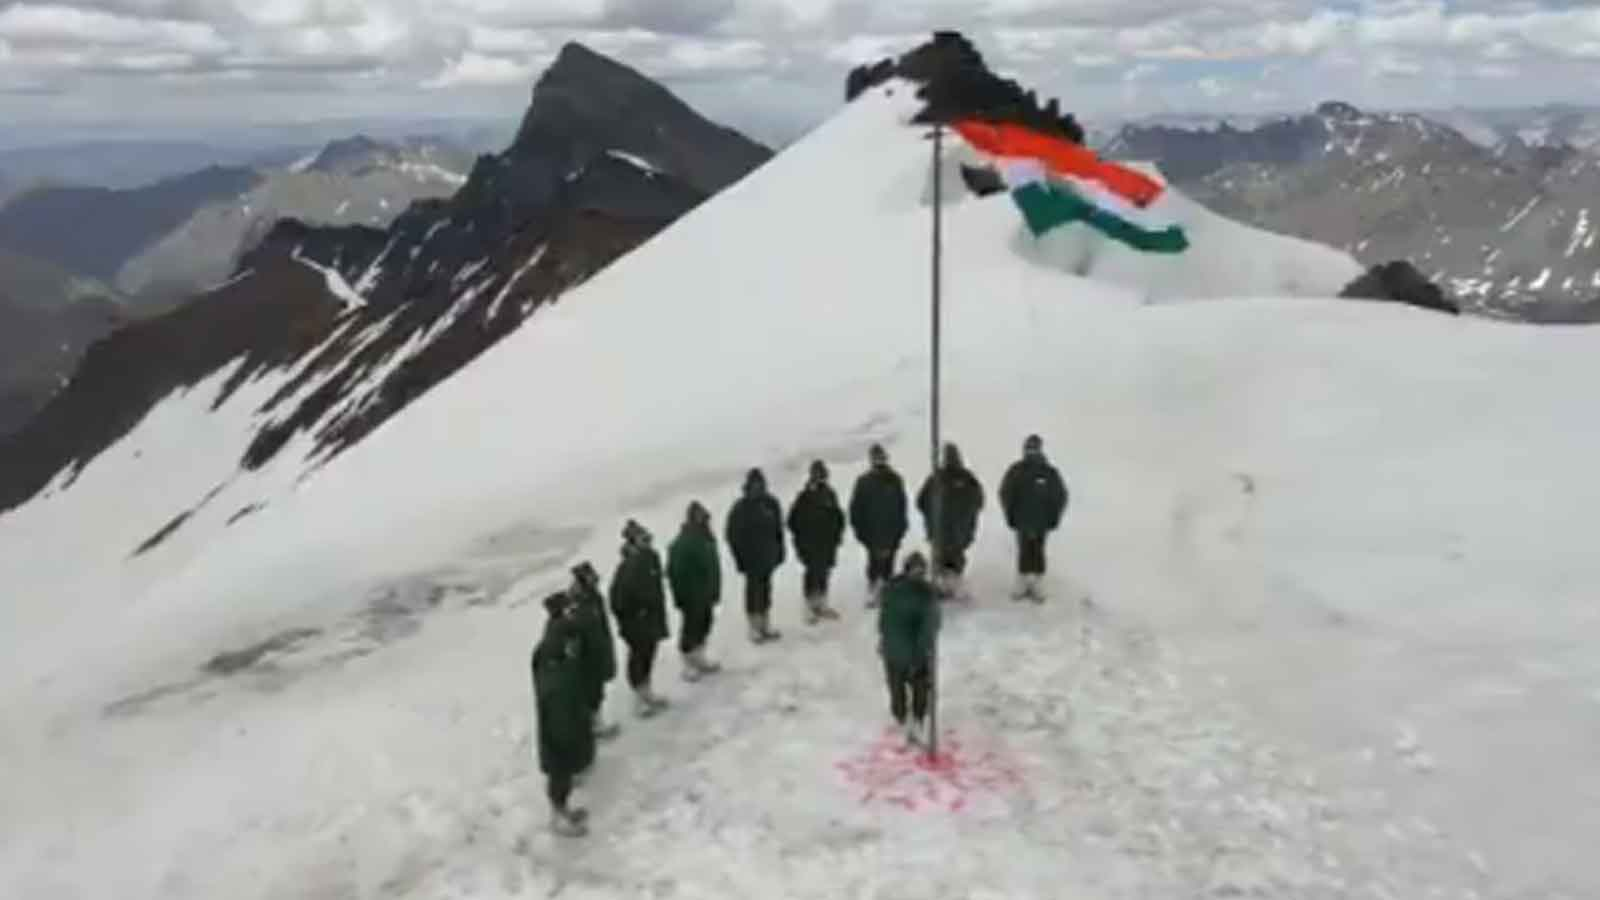 independence-day-2020-indian-army-soldiers-in-jks-gurez-sector-hoist-tricolour-on-a-snow-covered-peak